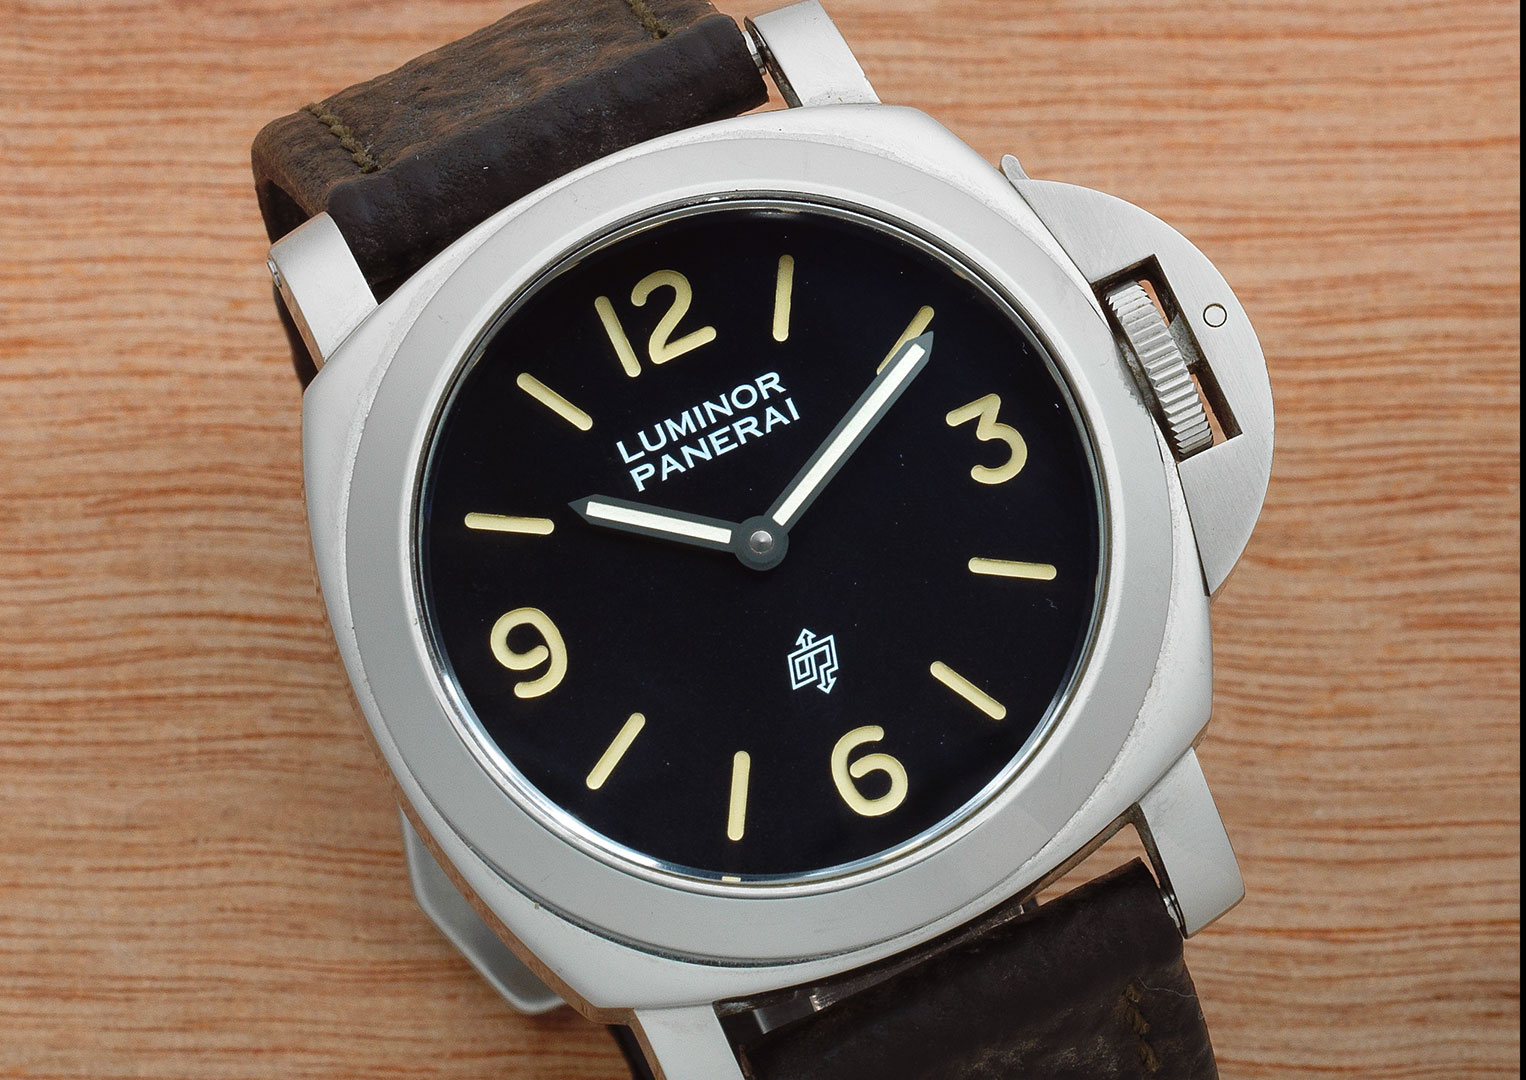 In recent years Panerai has switched to using the perfectly safe Super-LumiNova.